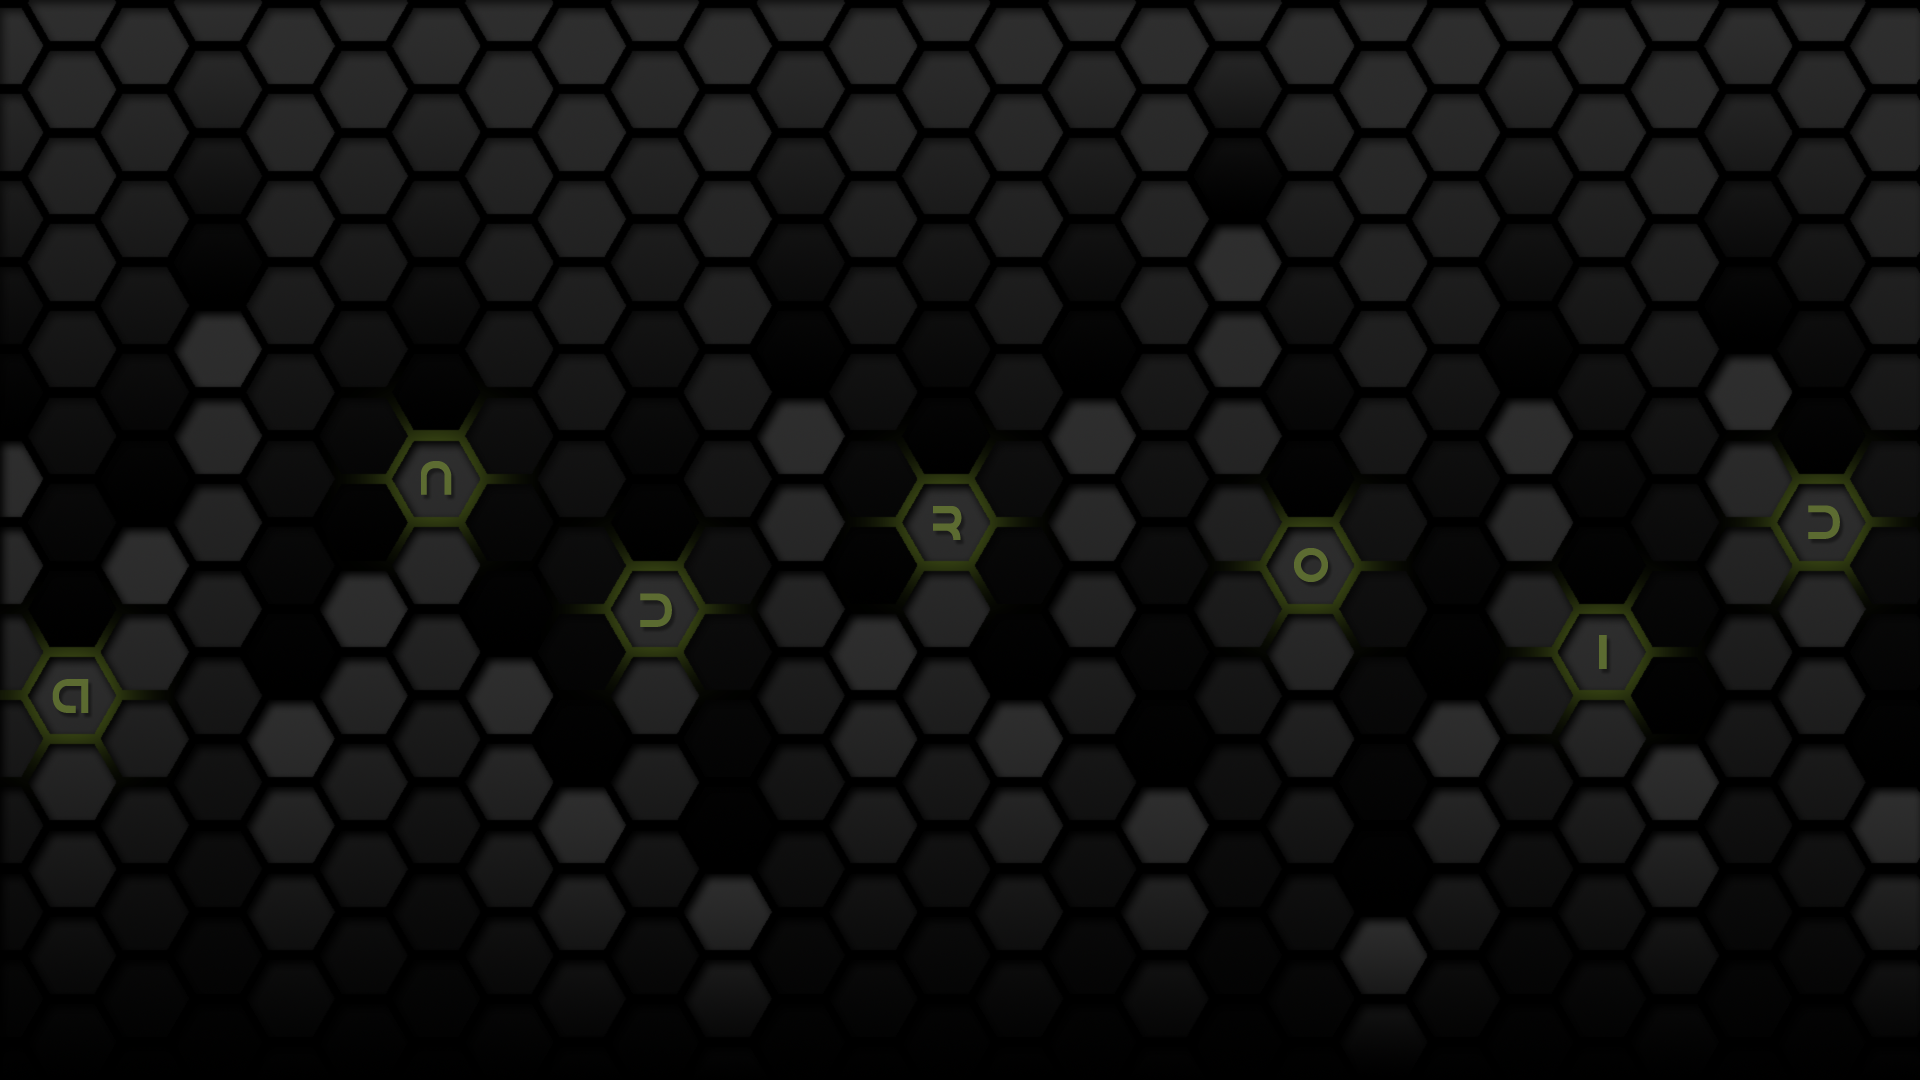 Android Developer Wallpaper 1920x1080